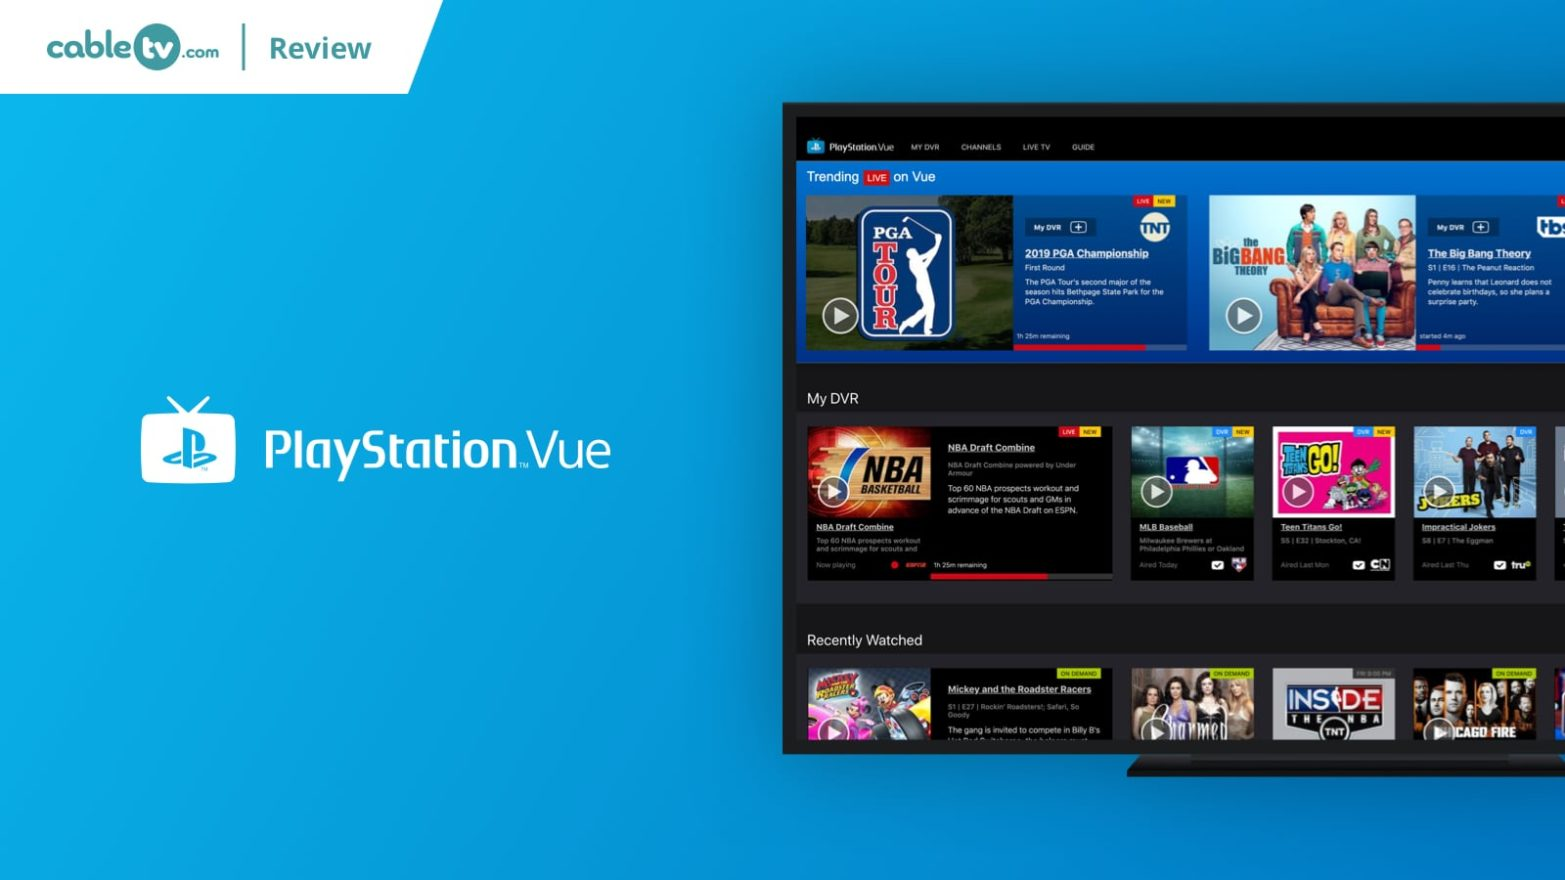 Playstation Vue Review: Prices, Channels, Devices & More